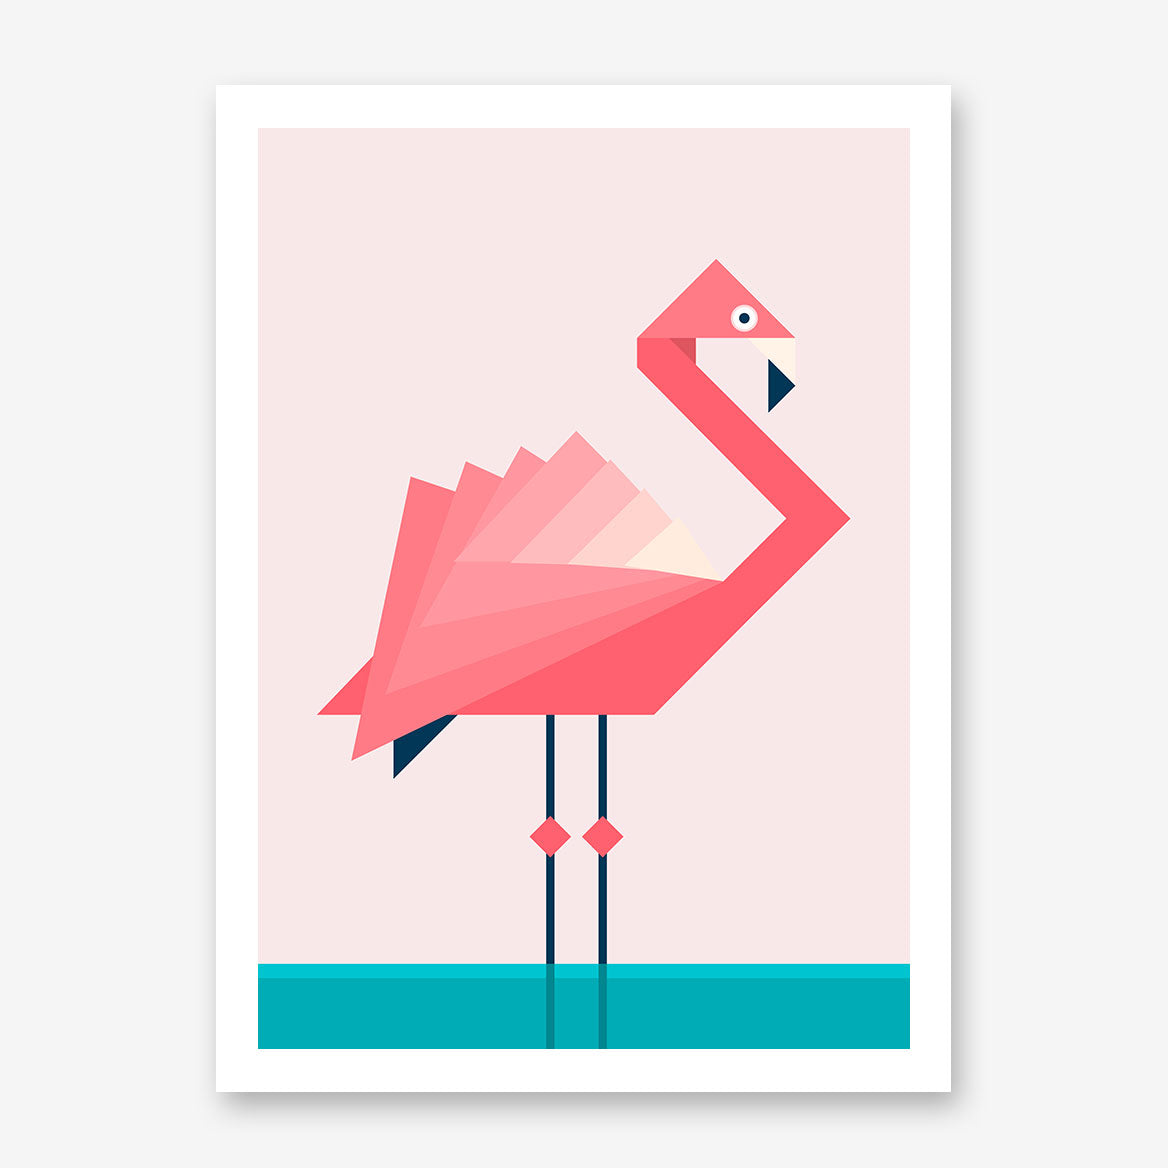 Geometric poster print with pink flamingo, on pink and blue background